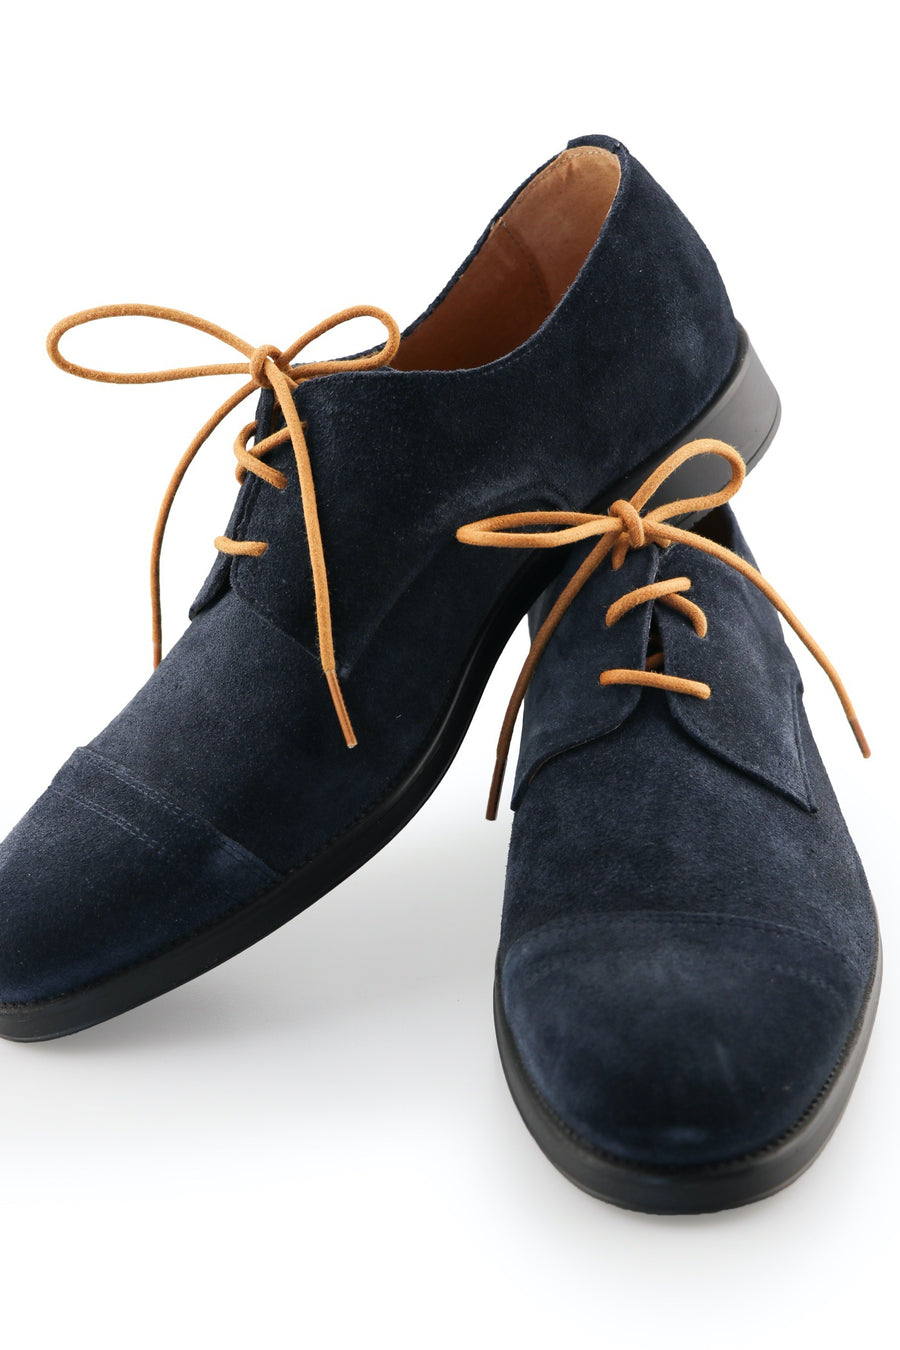 Shoe Laces Coffee Shoe Laces Dark Cocoa Waxed Cotton Ted and Lemon